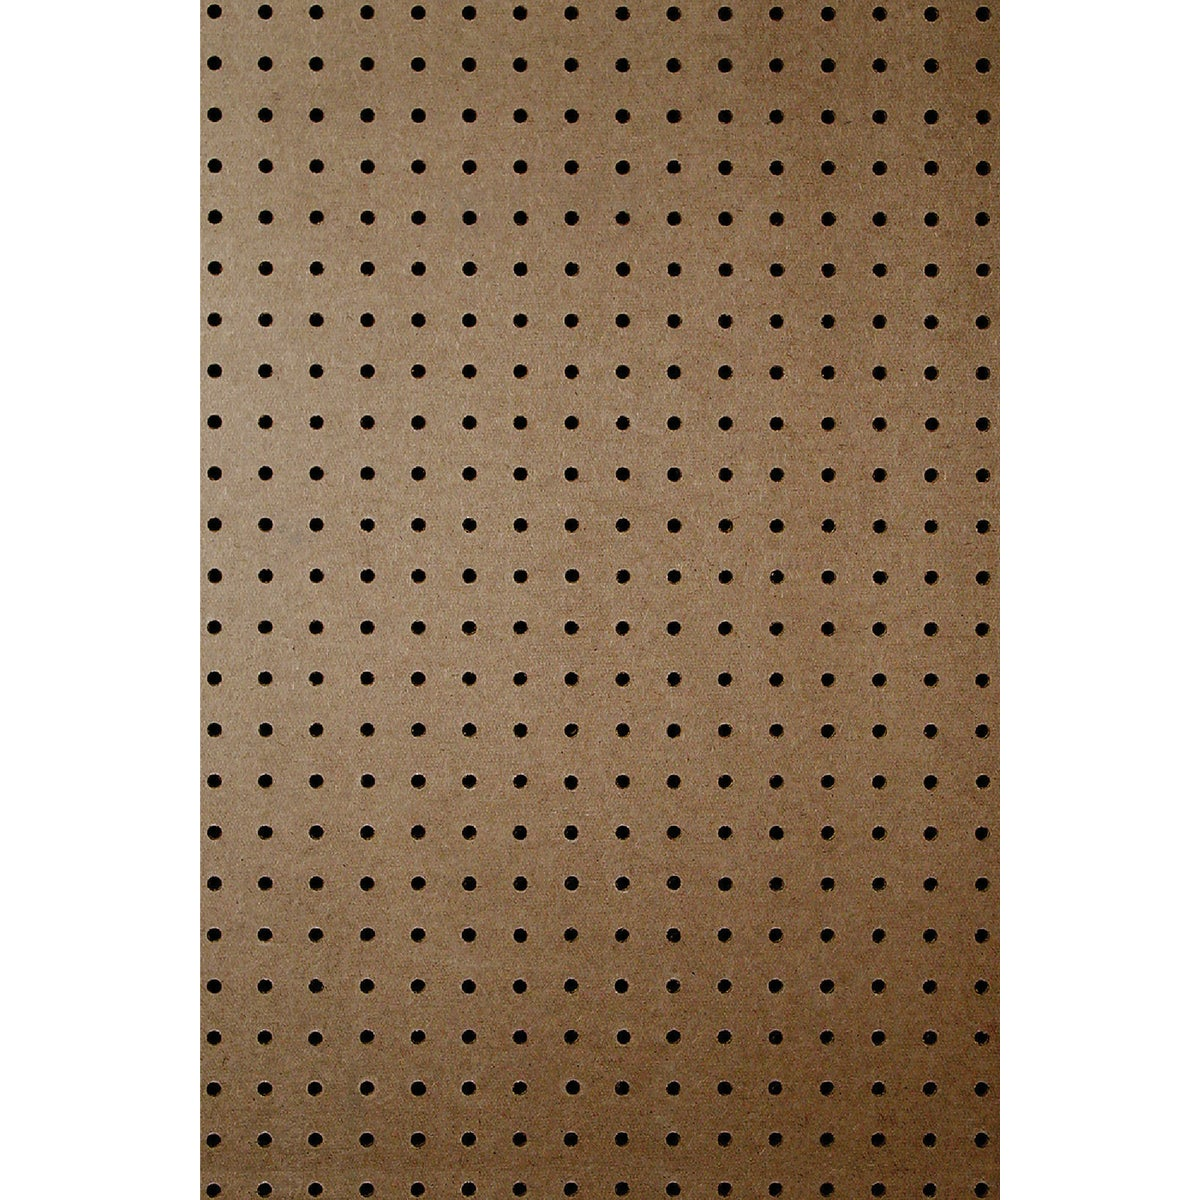 "1/4""4'X8' TMPRD PEGBOARD - PTS220 by Dpi Decorative Panel"